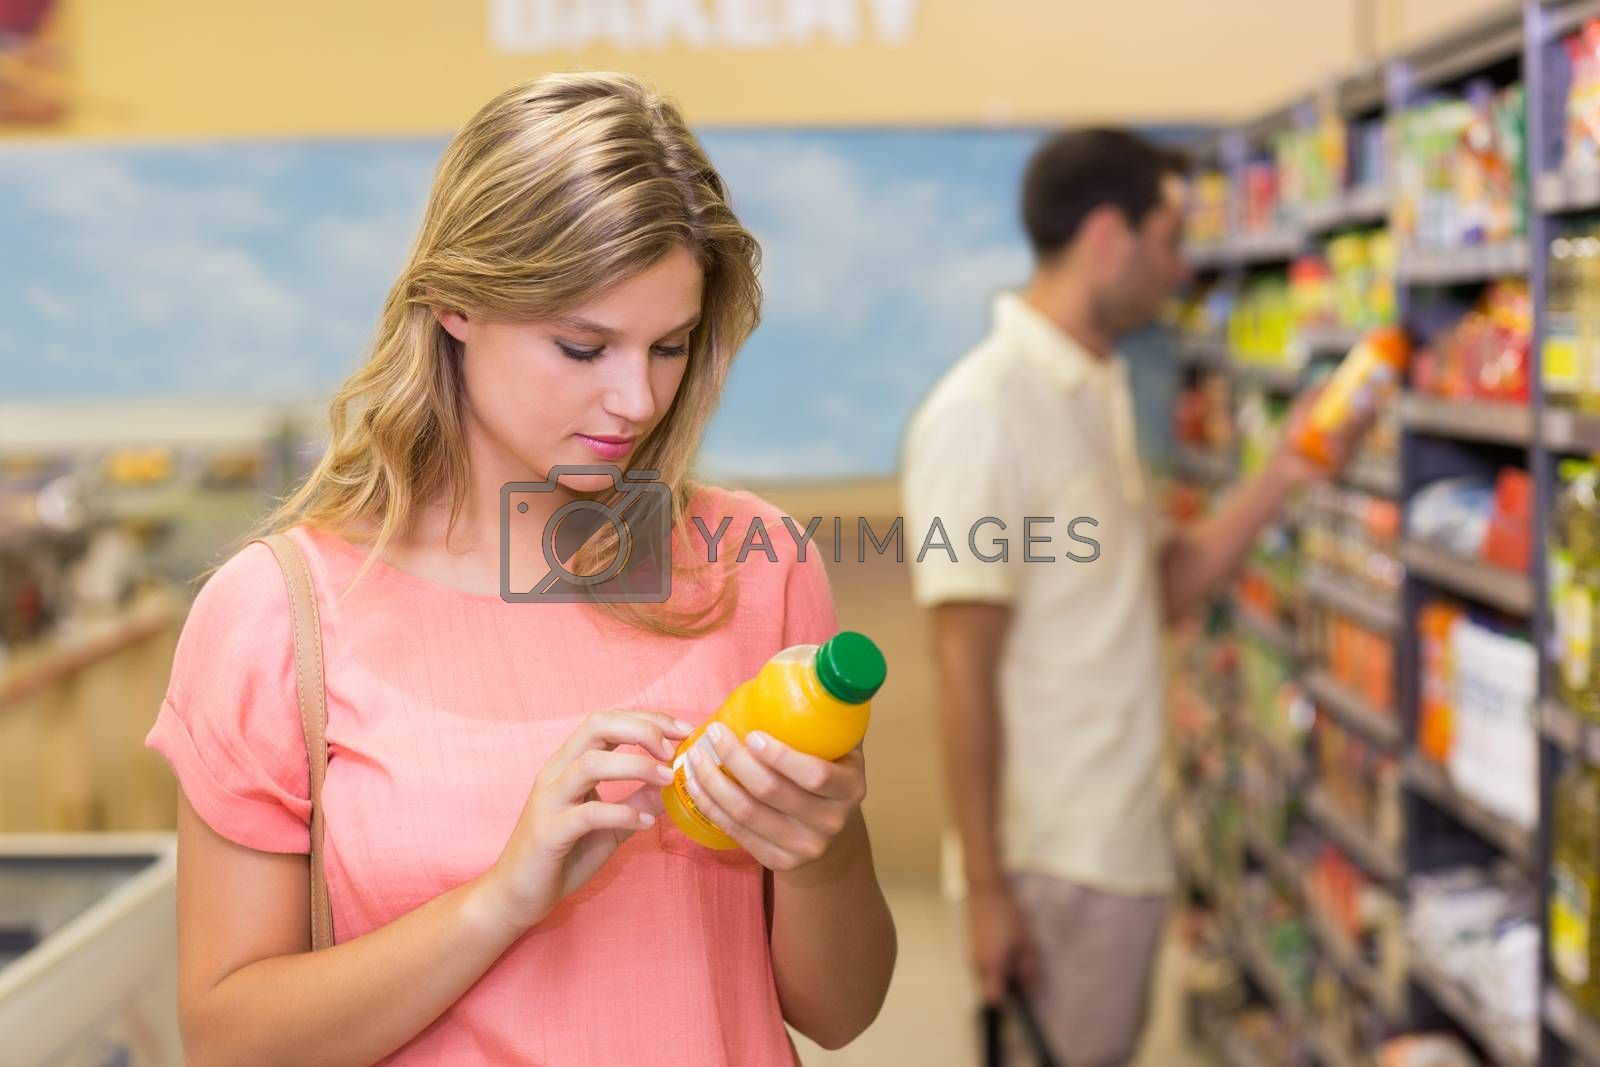 Royalty free image of Pretty blonde woman buying product by Wavebreakmedia